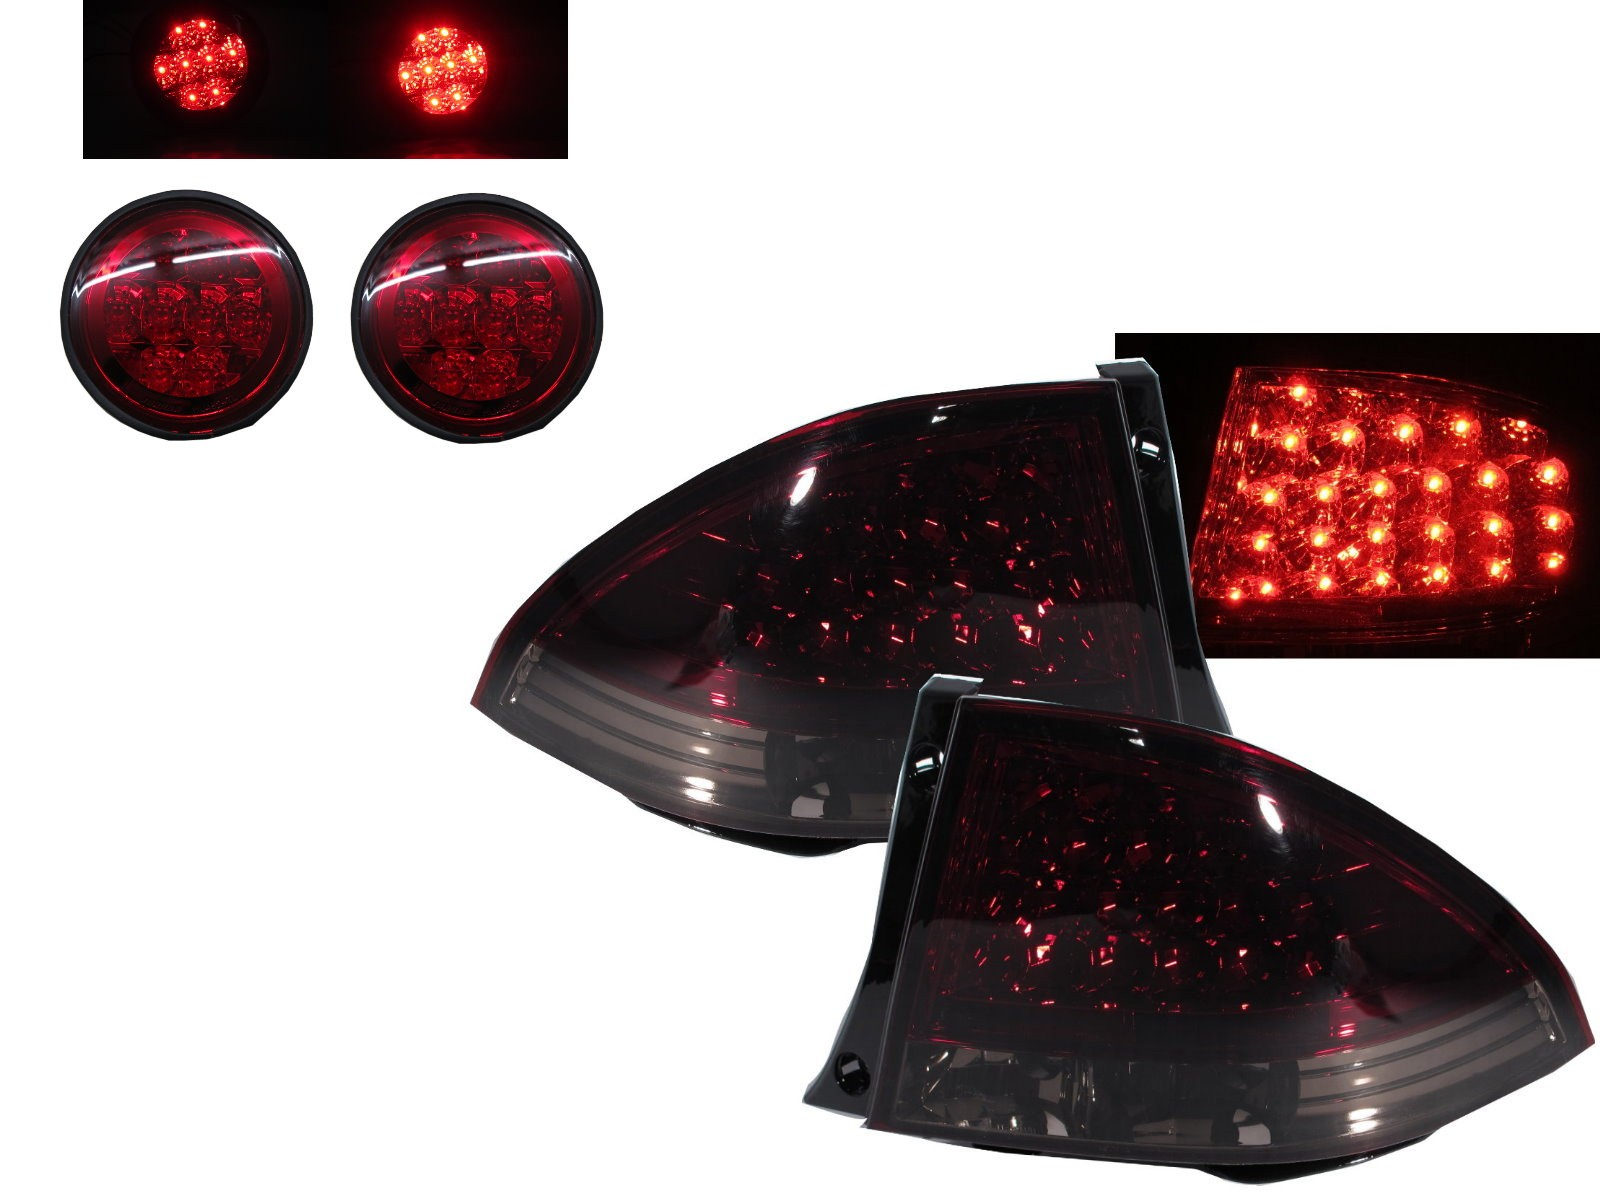 CrazyTheGod IS IS200/IS300 XE10 1999-2005 Sedan/Hatchback/Wagon 4D/5D LED Tail Rear Light Red/Smoke for LEXUS